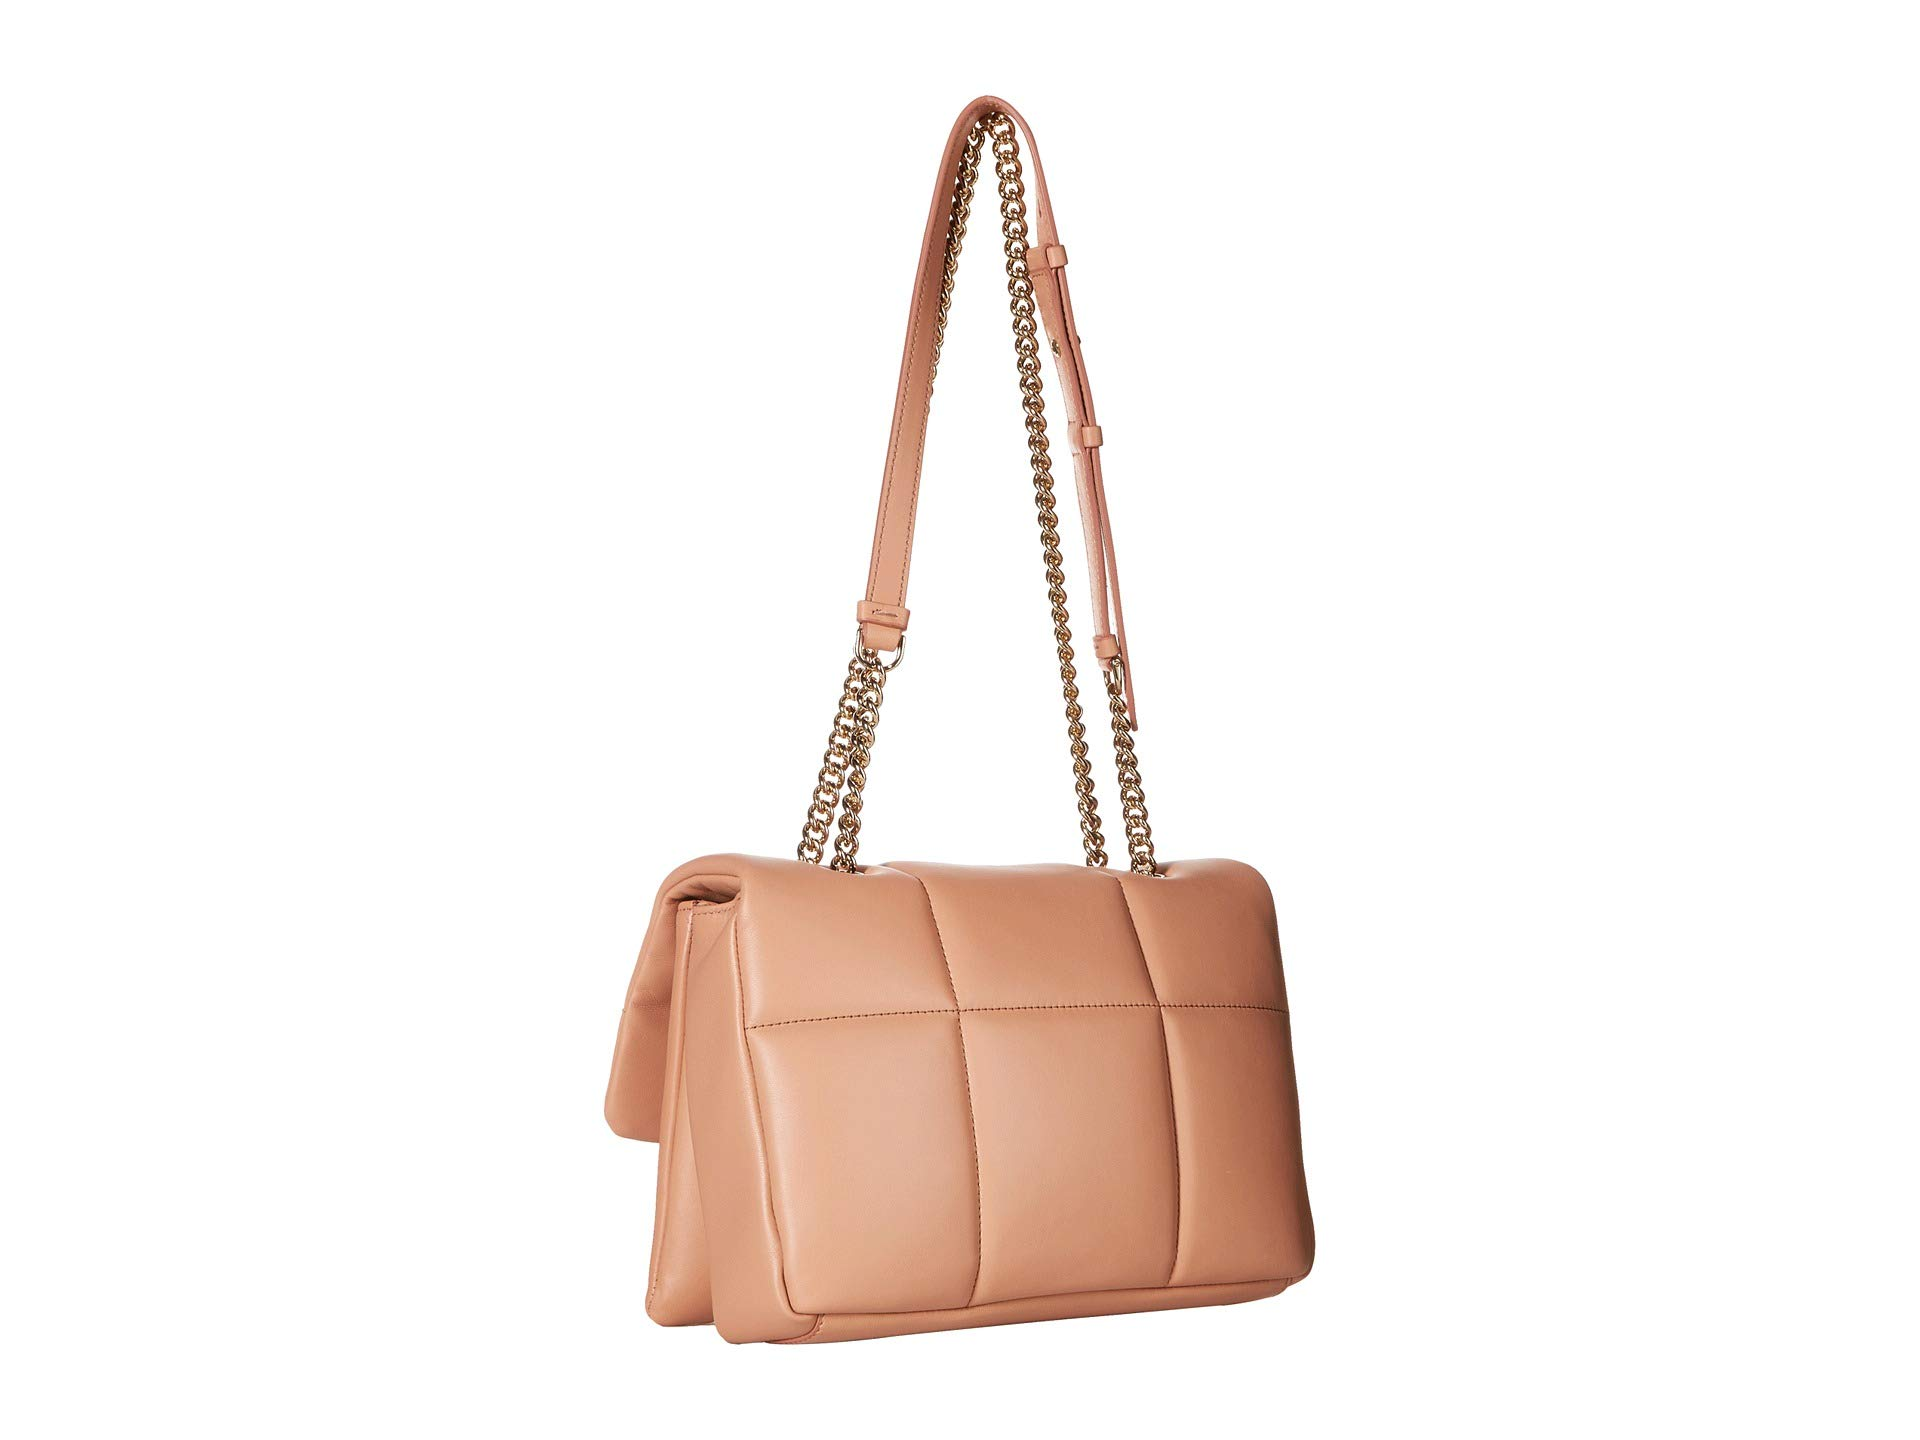 Salvatore Ferragamo 21h342 Blush Blush New Salvatore 21h342 New Ferragamo Salvatore xqOXU4X